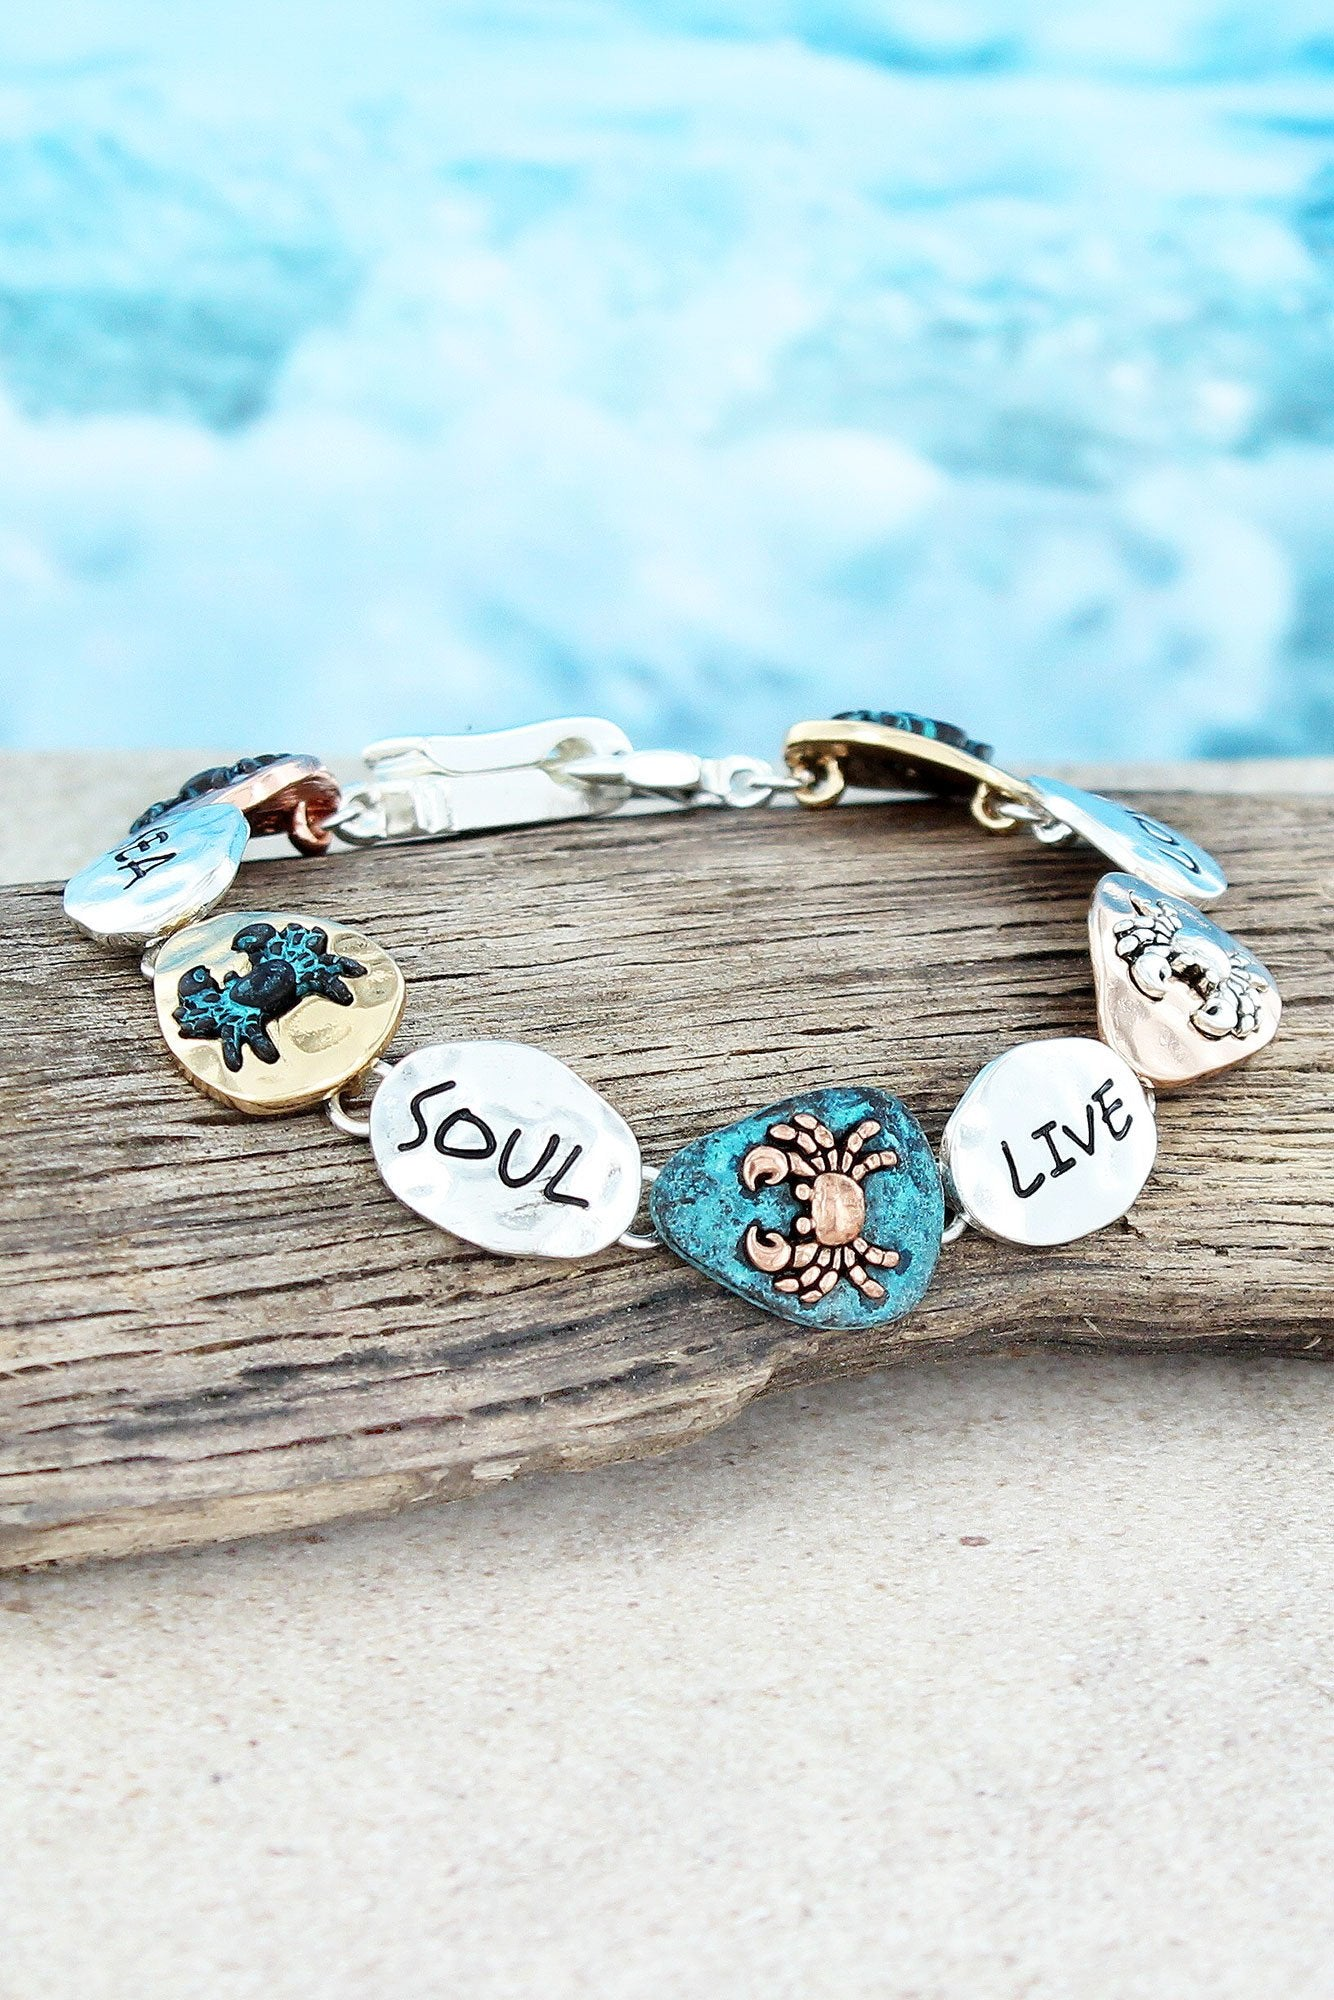 Tri-Tone and Patina 'Sea Soul Live Love' Crab Magnetic Bracelet #AB8514-4T